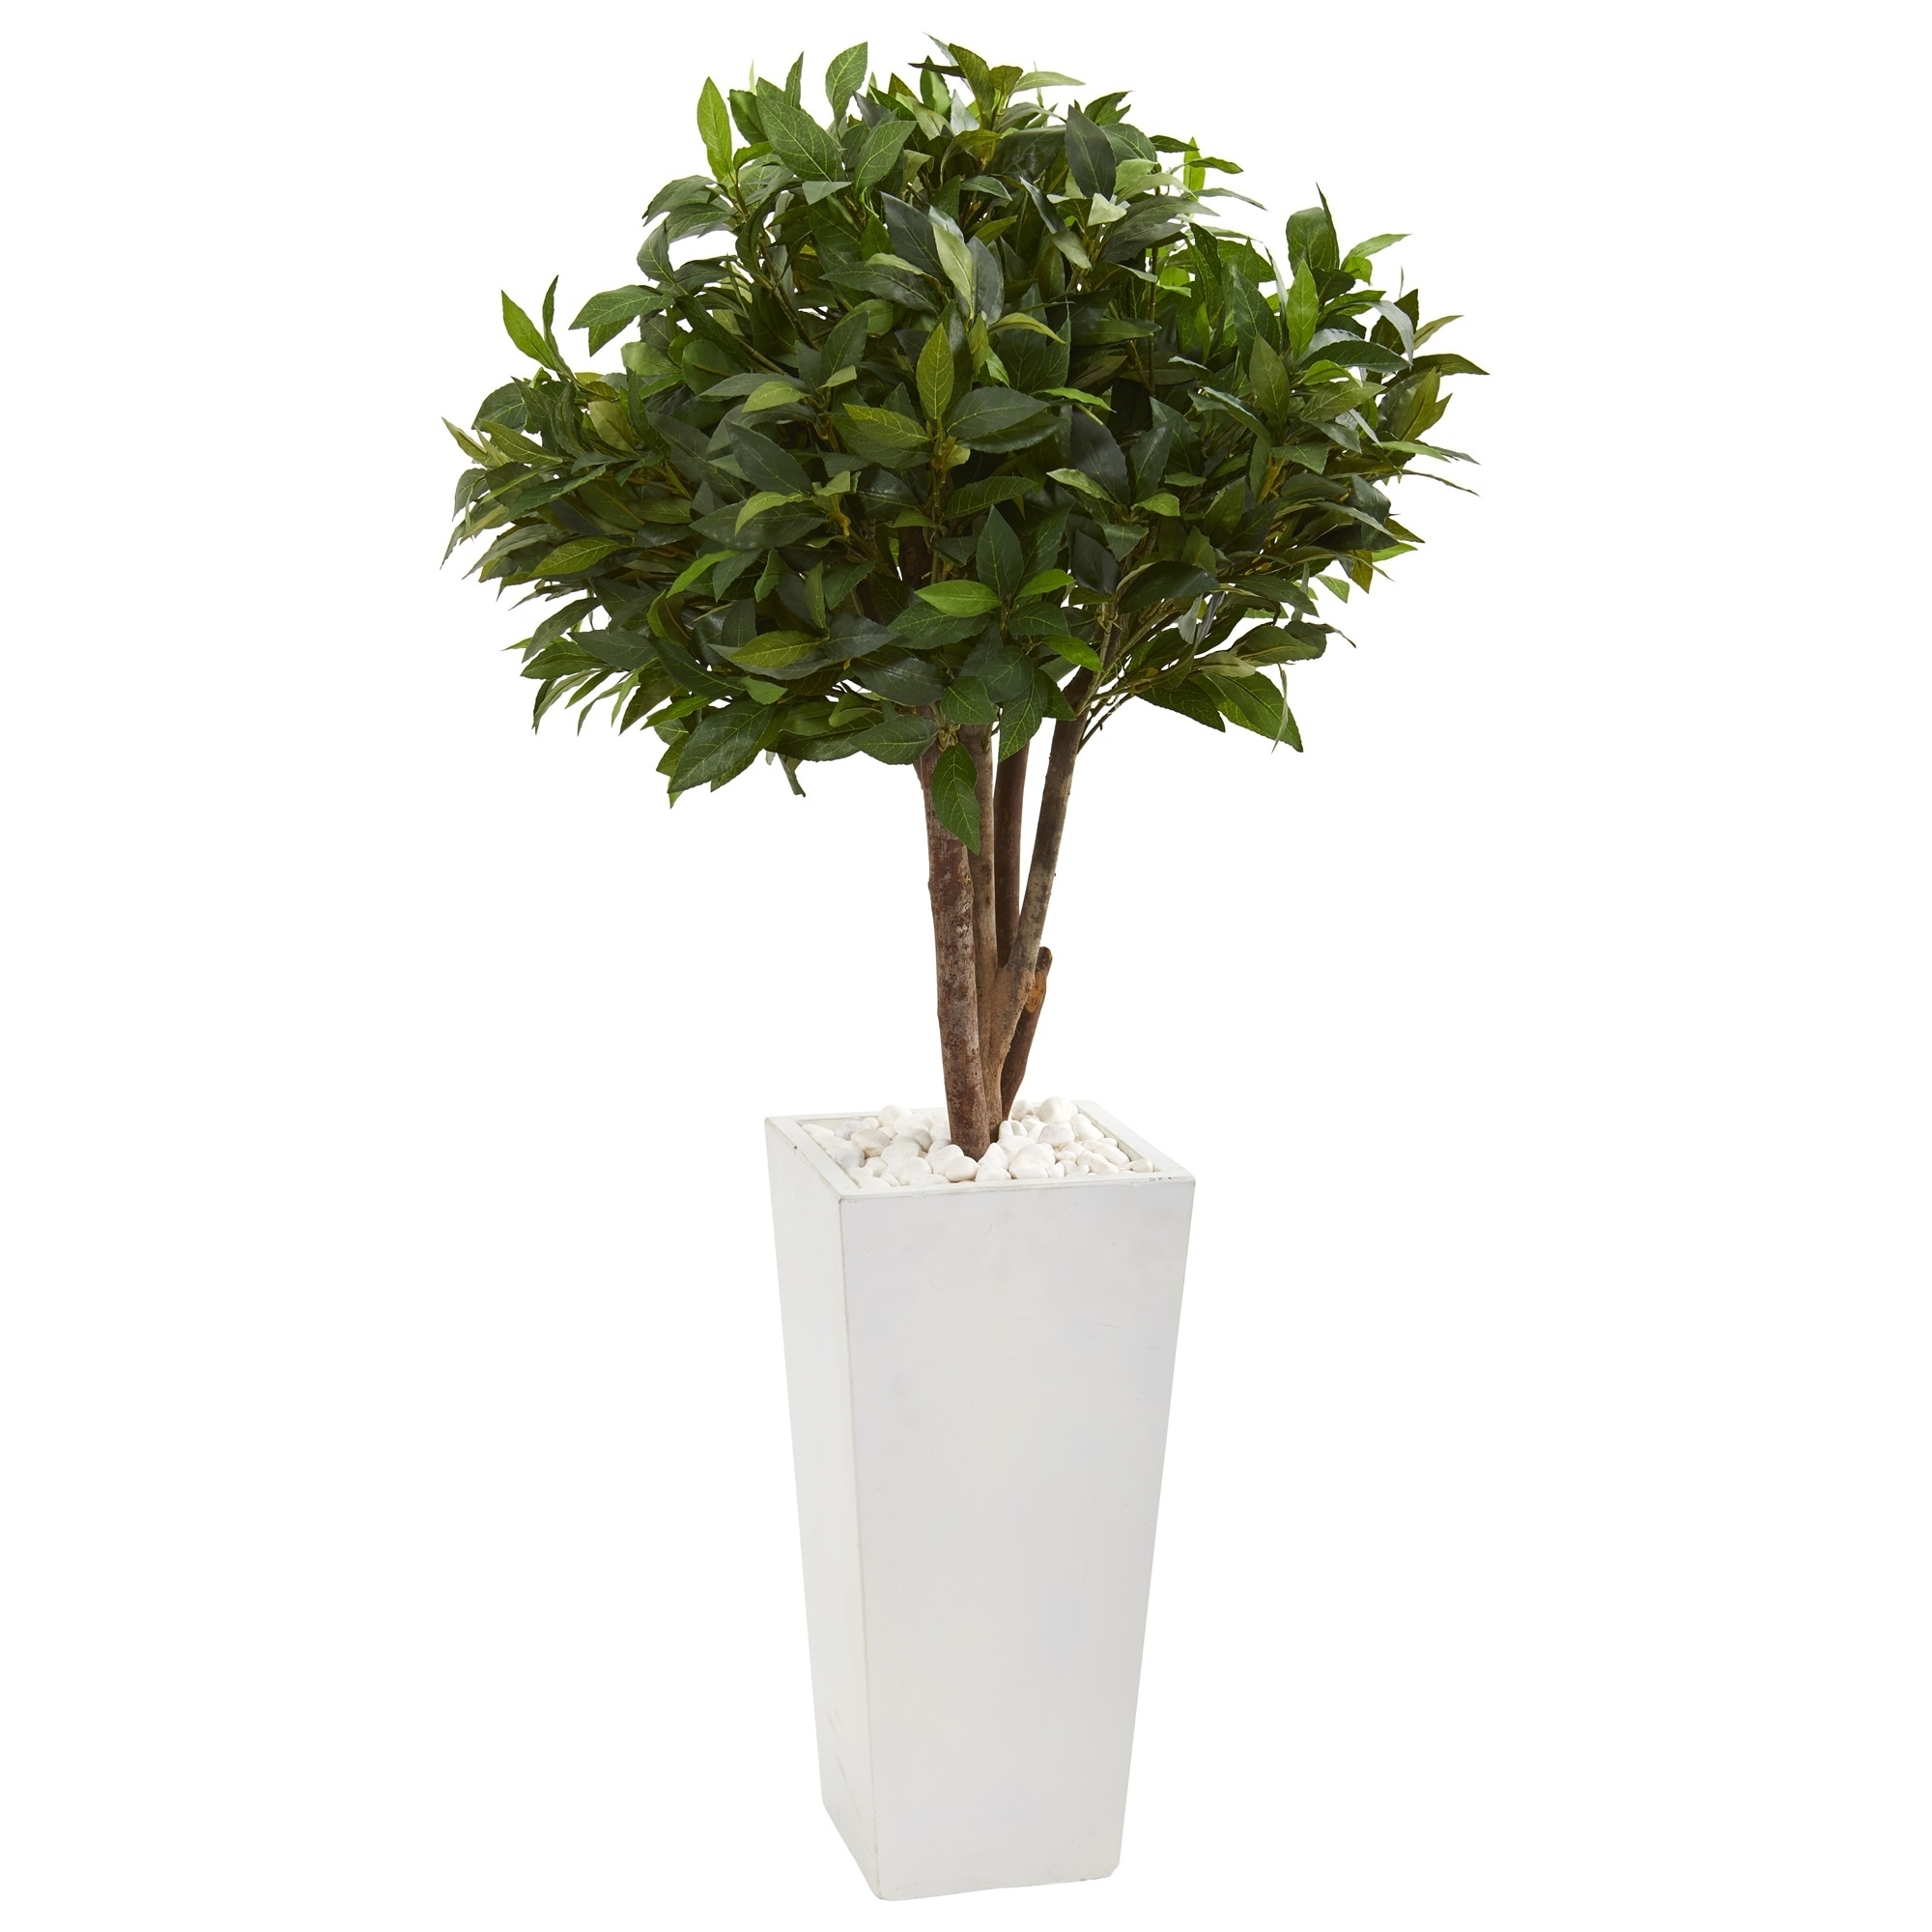 49 Bay Leaf Topiary Artificial Tree in White Tower Planter